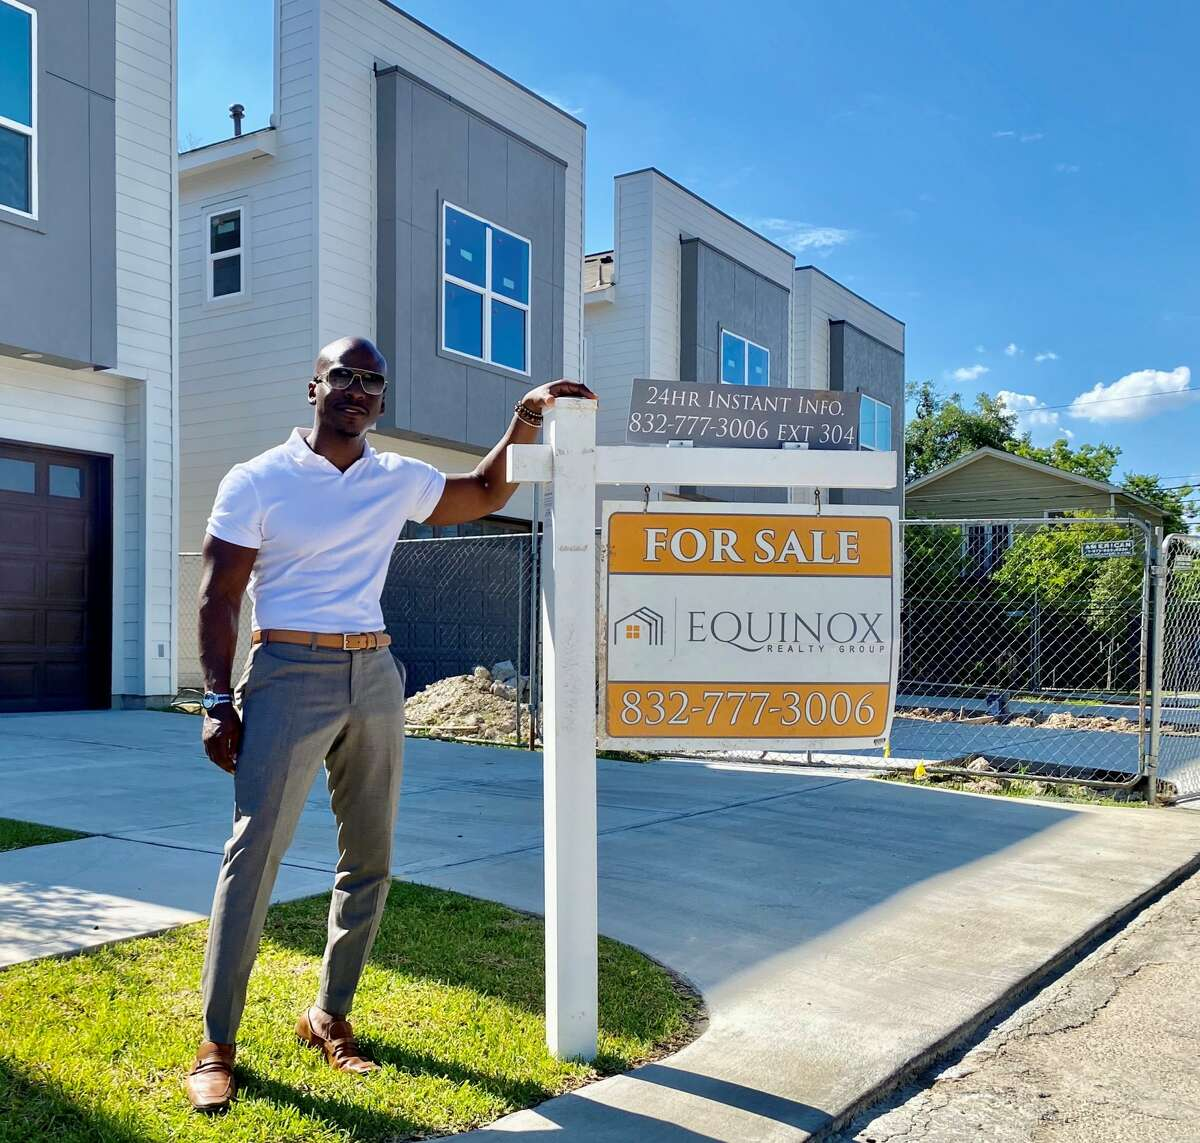 Houston real estate broker, Jay Bradley has worked with Chris Senegal and Cocoa Collective Xchange to bring black-owned businesses into Fifth Ward neighborhoods.